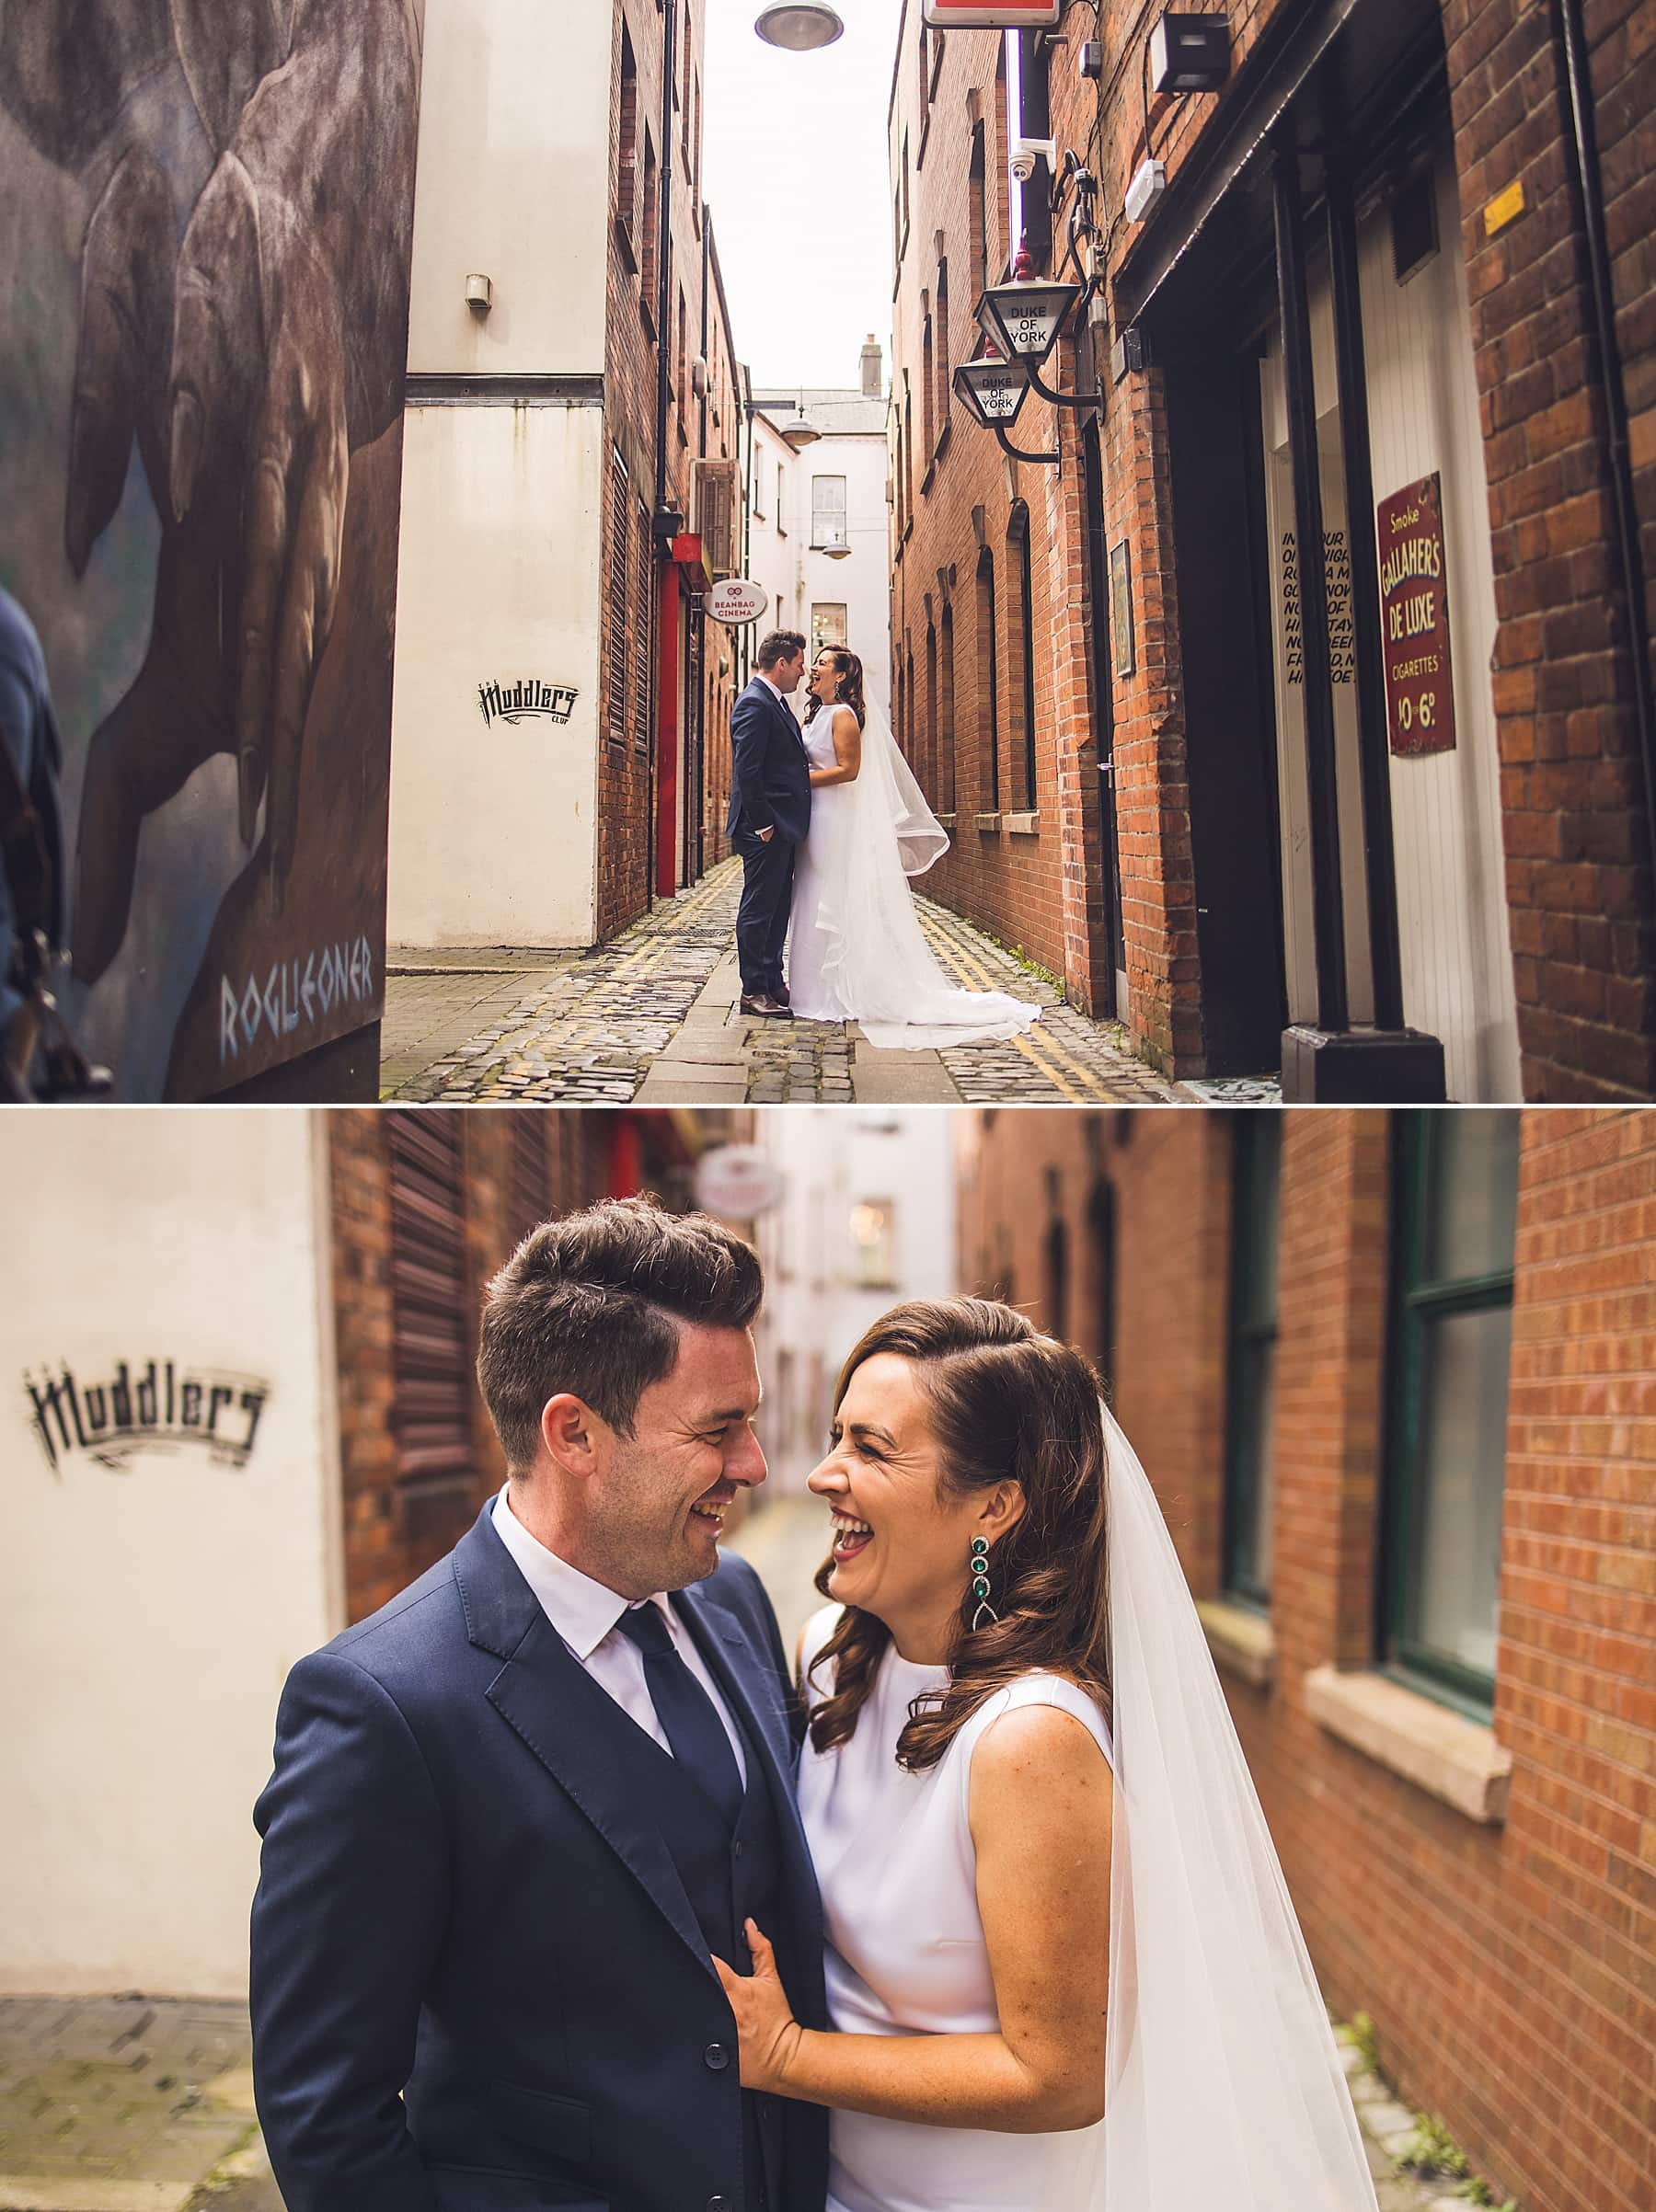 Belfast City Wedding Photographer,Titanic Hotel Wedding,Cathedral Quarter,Duke of York,Navyblur Photography,